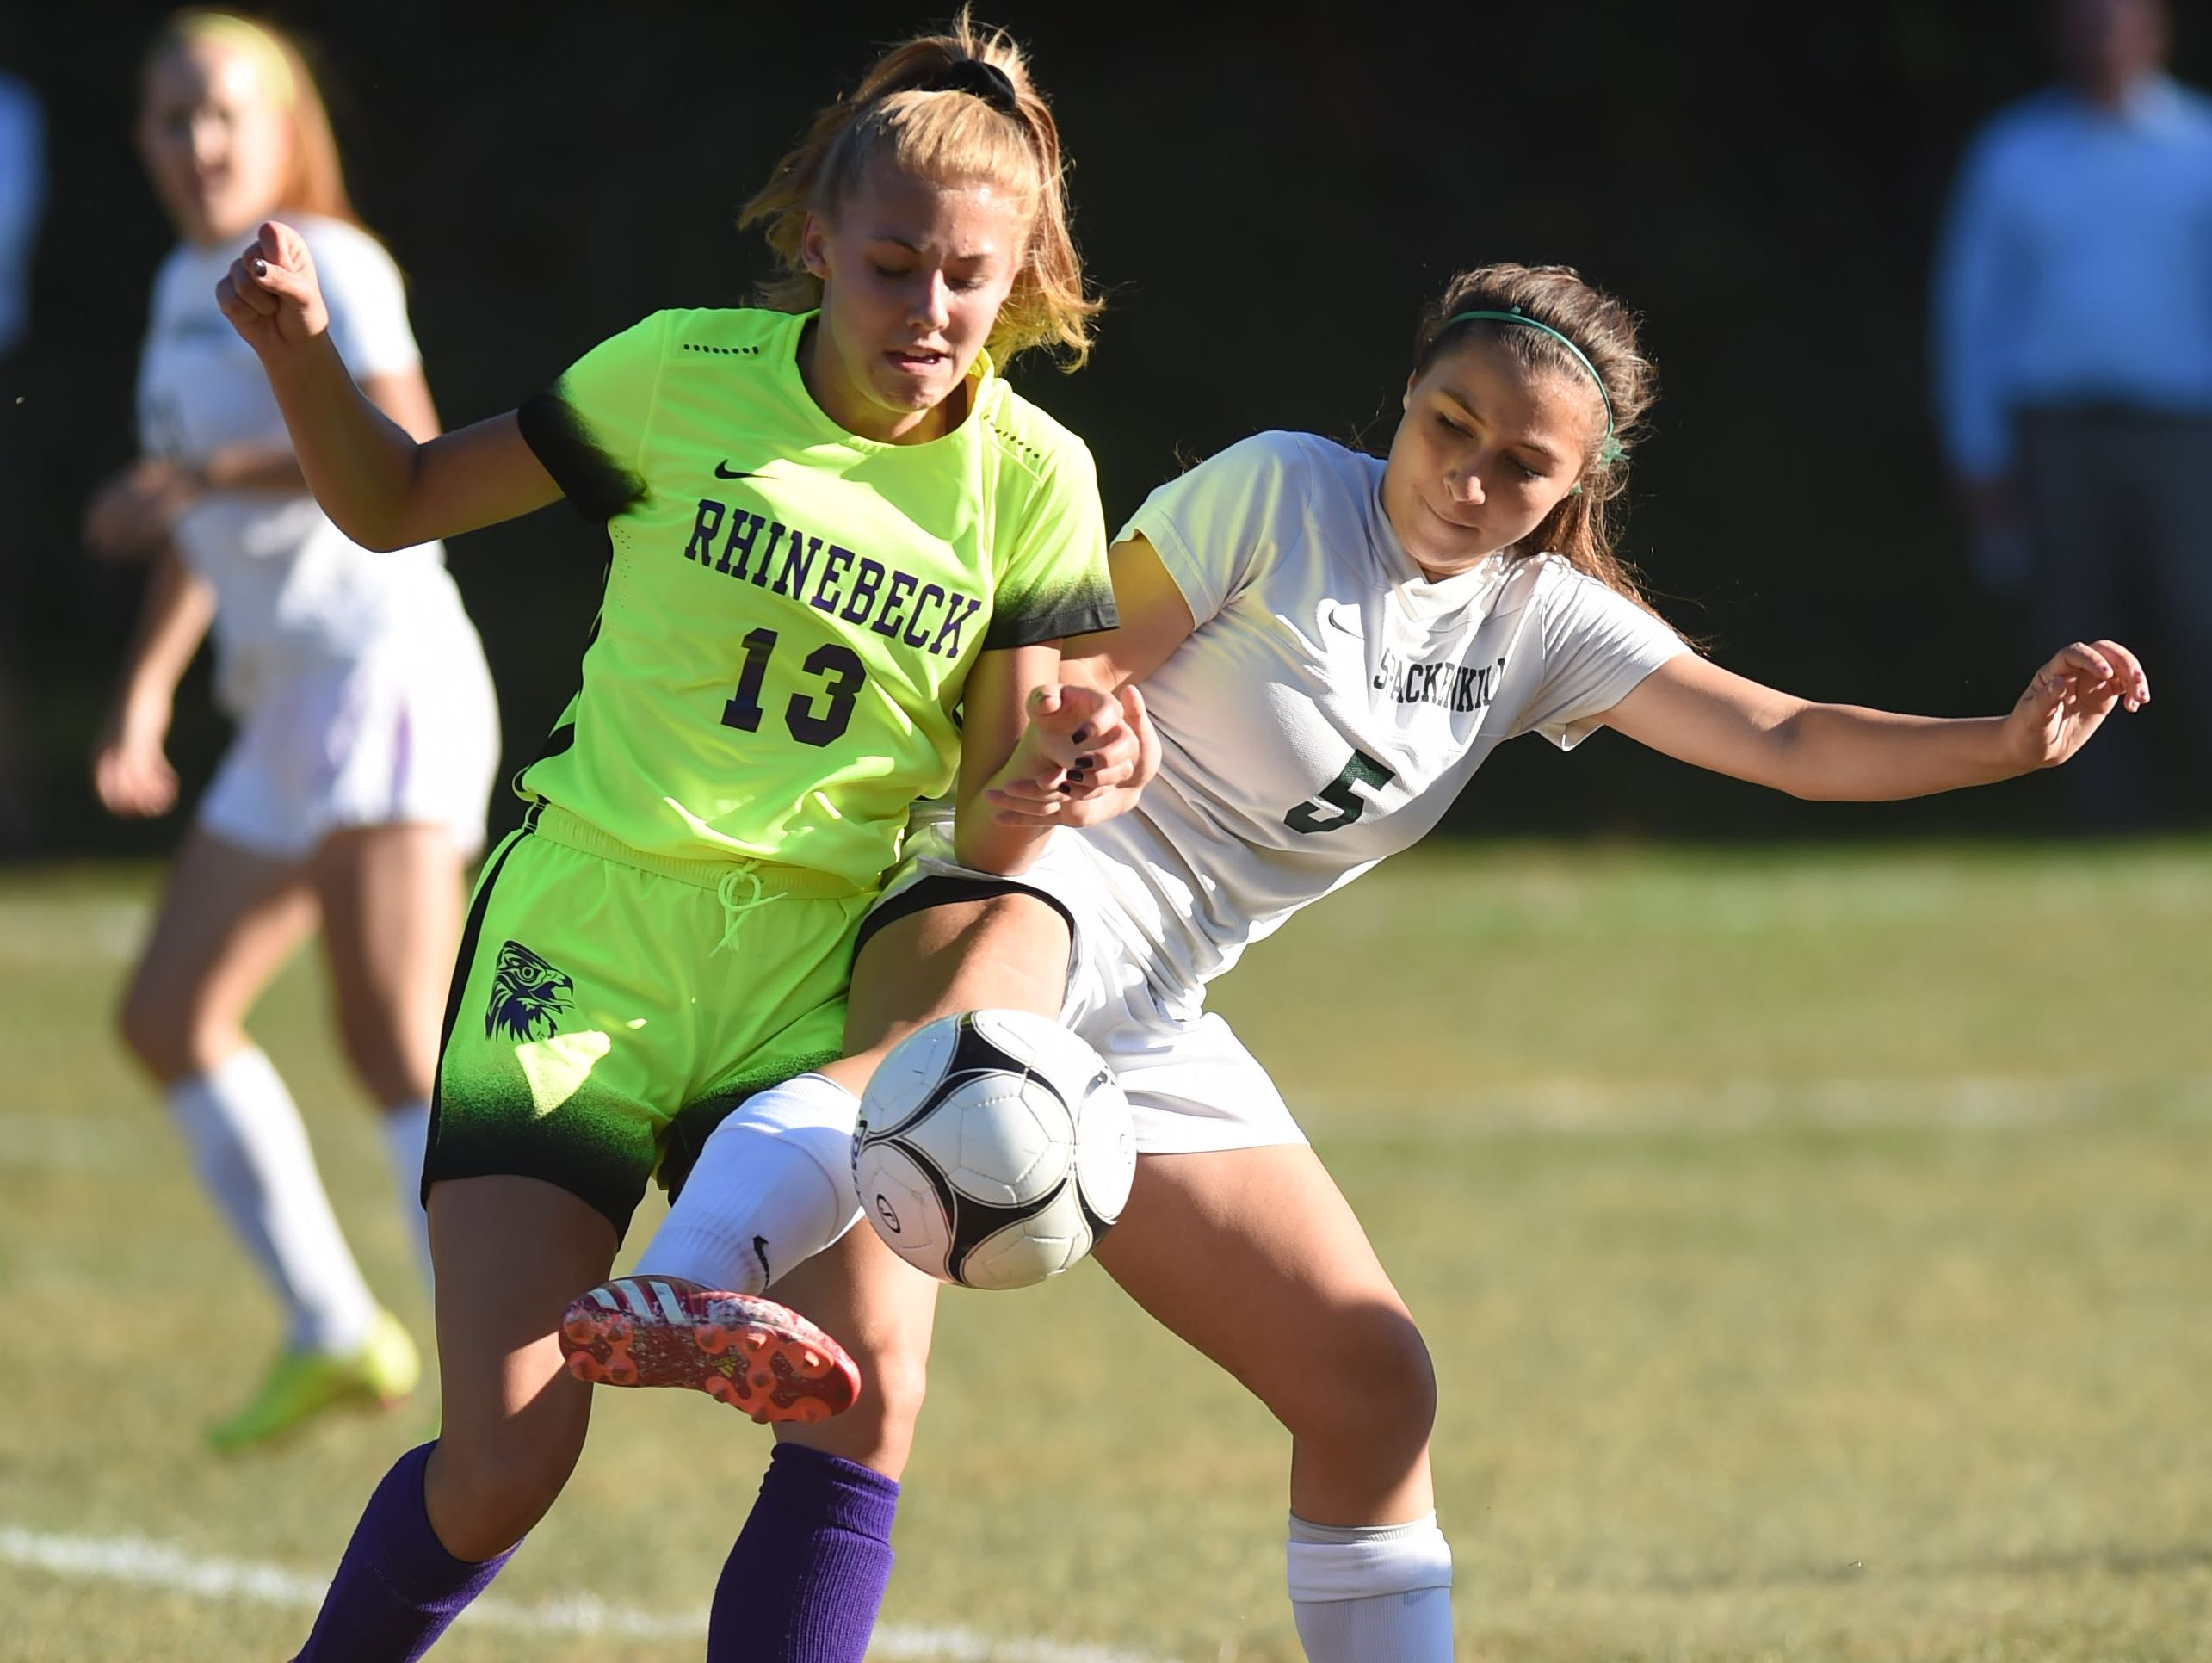 Spackenkill's Caitlin Speranza and Rhinebeck's Amber Hoglin battle for control of the ball during Thursday's game at Spackenkill High School.